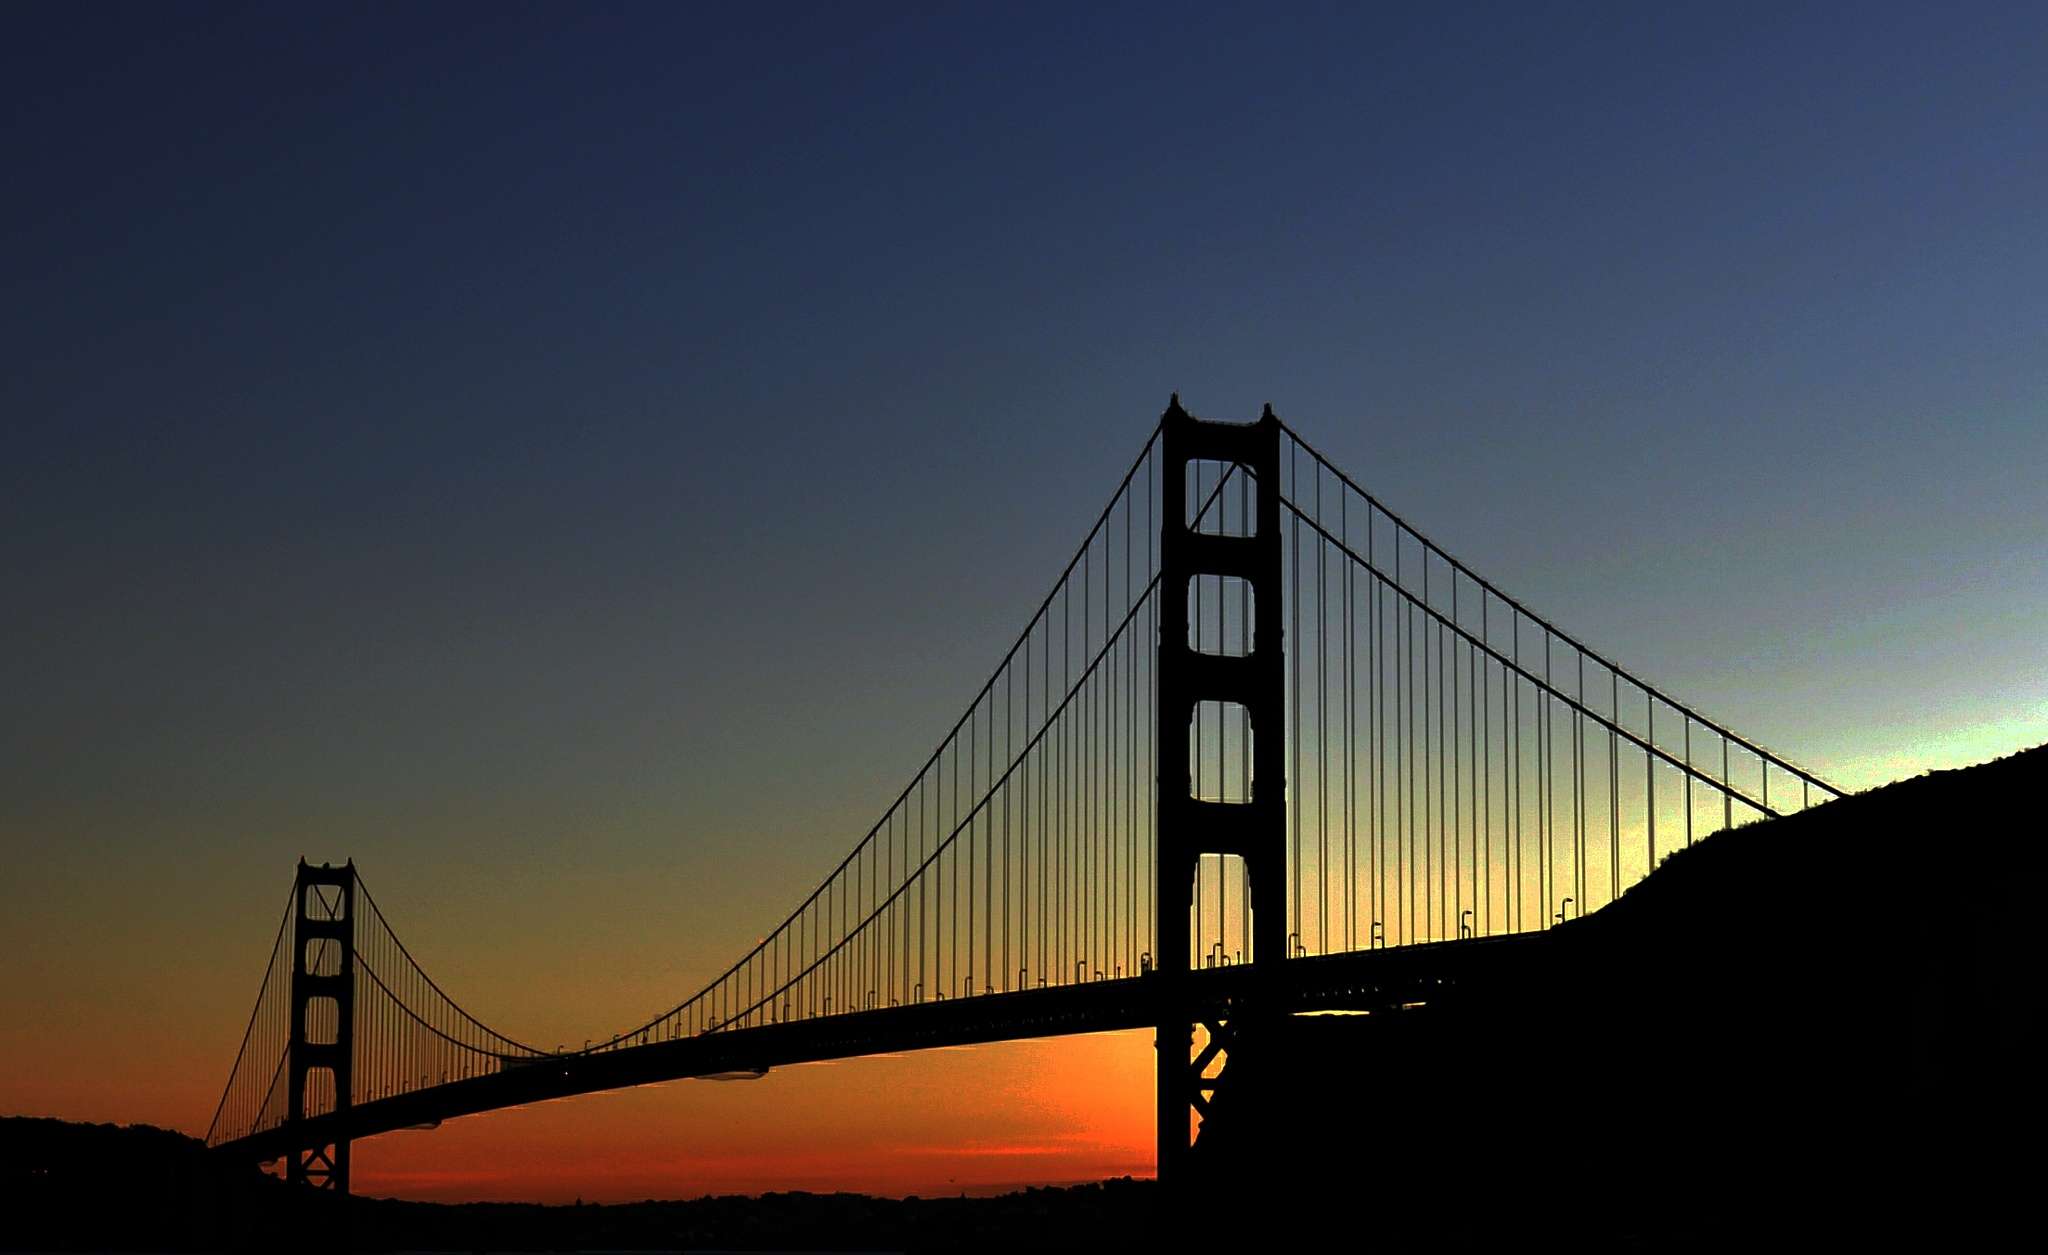 Drafting is like painting the Golden Gate Bridge.The closer you get to the end, the more you start t by Sadiq Ali AlQatari